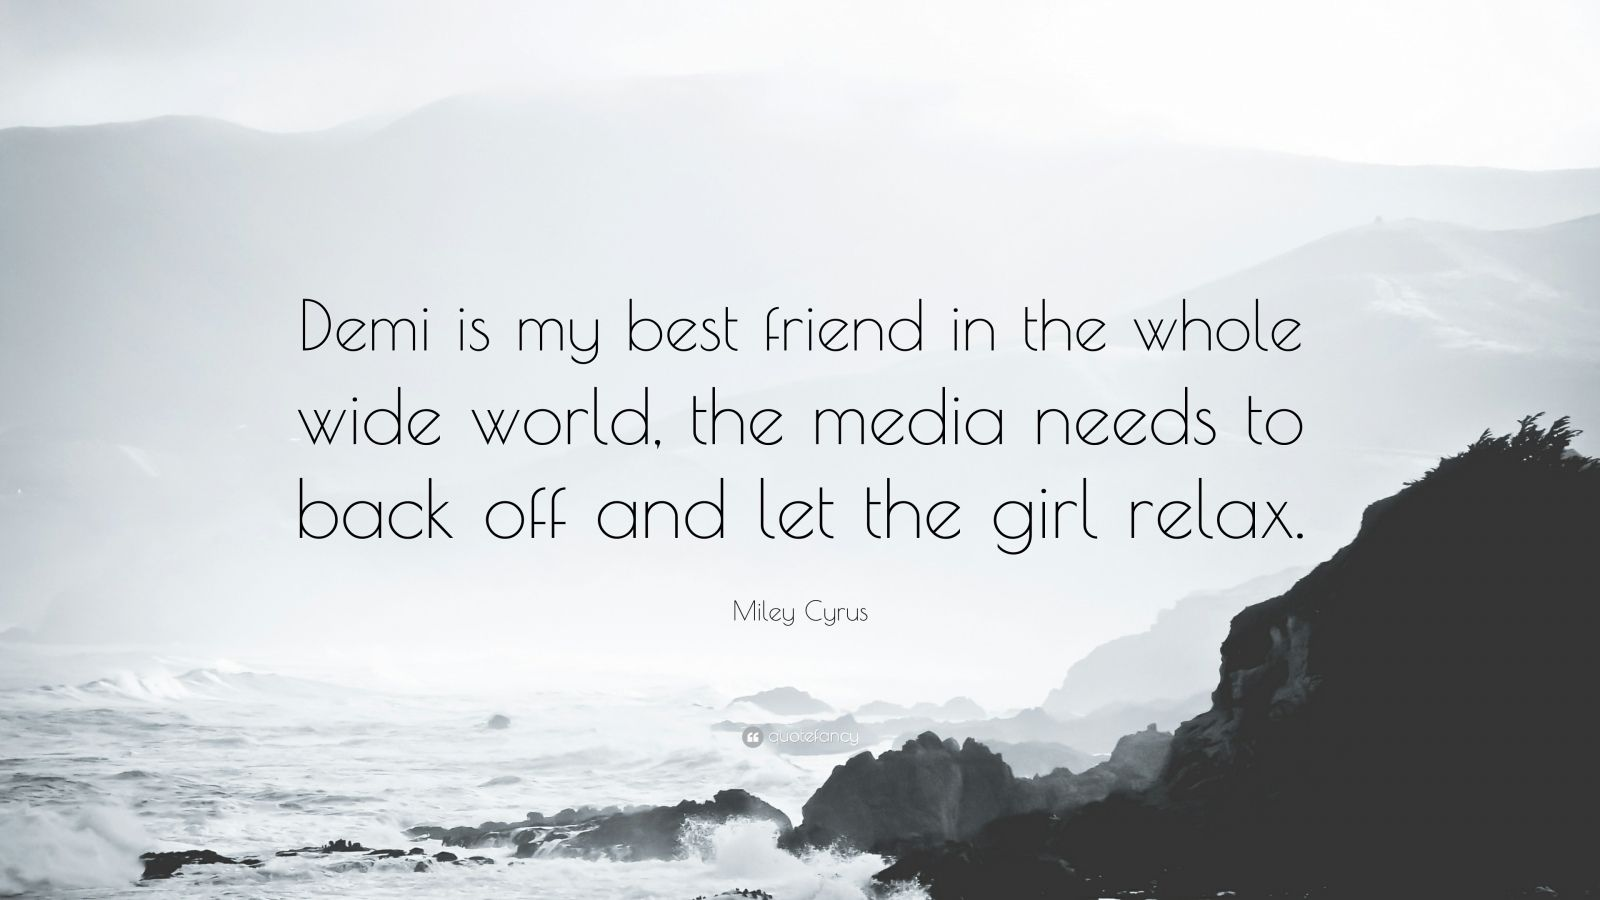 """Miley Cyrus Quote: """"Demi is my best friend in the whole wide world, the media needs to back off and let the girl relax."""""""